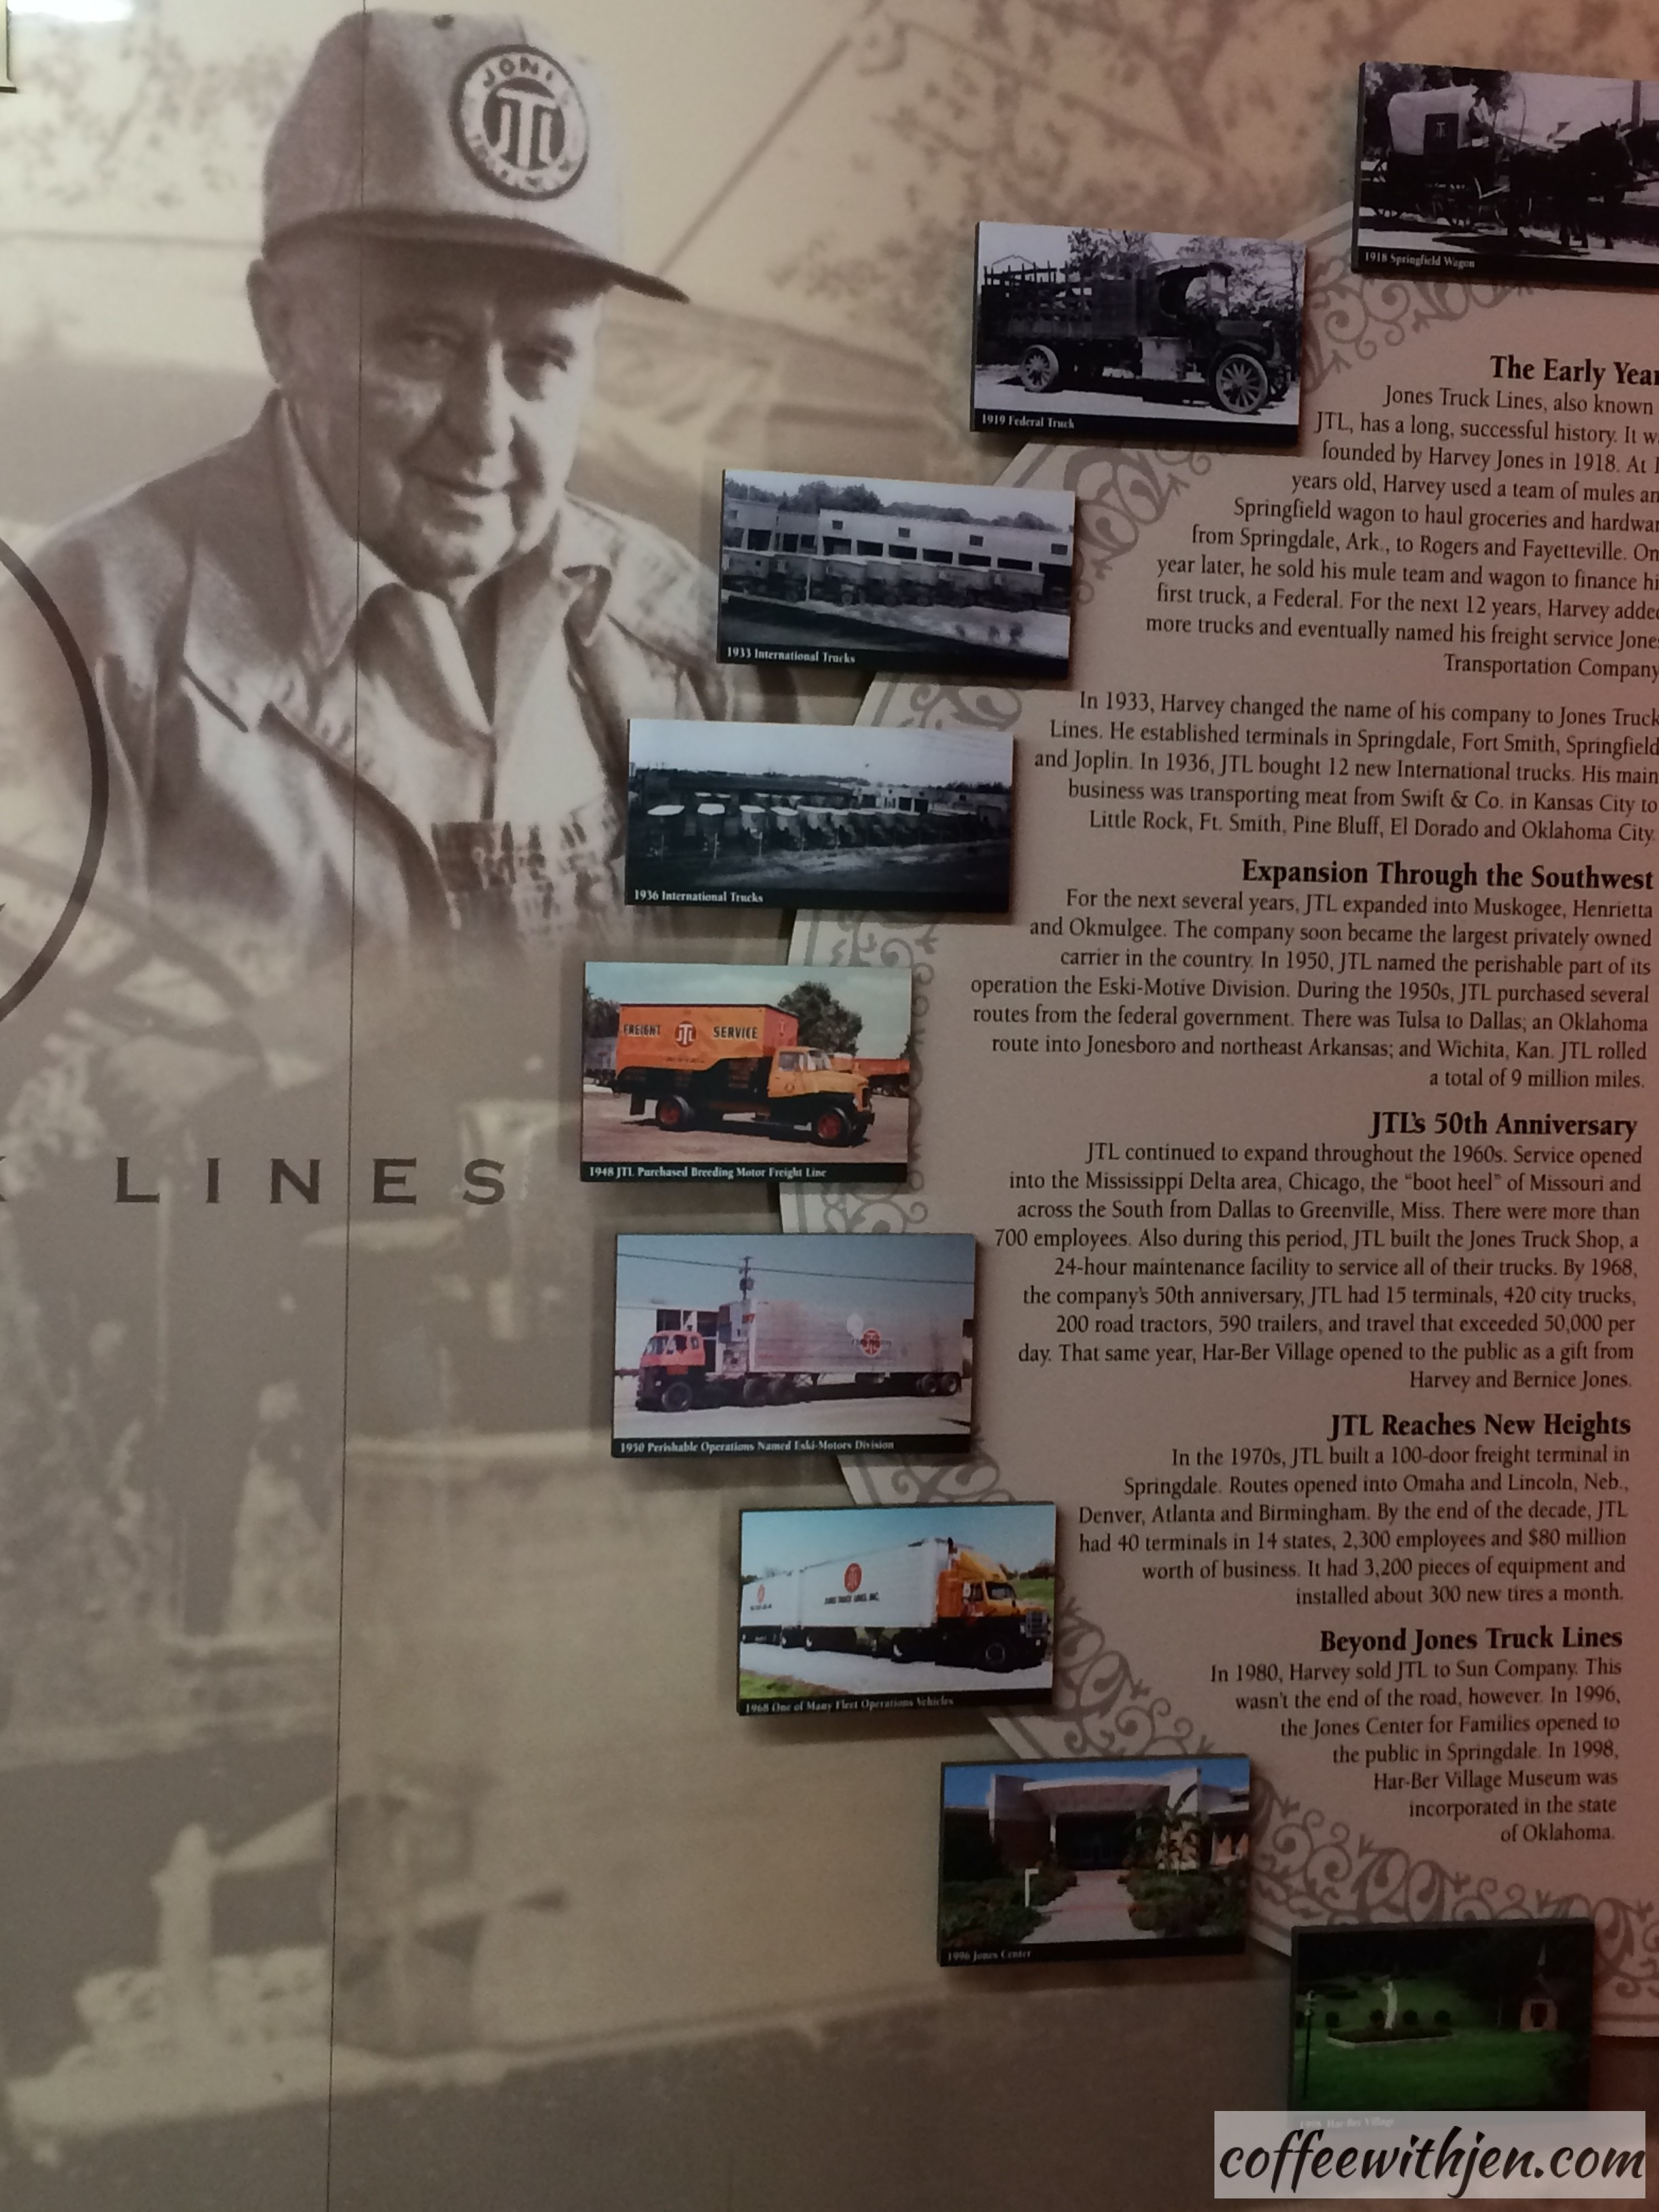 This is a short timeline of the history of Mr. Jones's business.  What a testament to hard work and the American Dream!